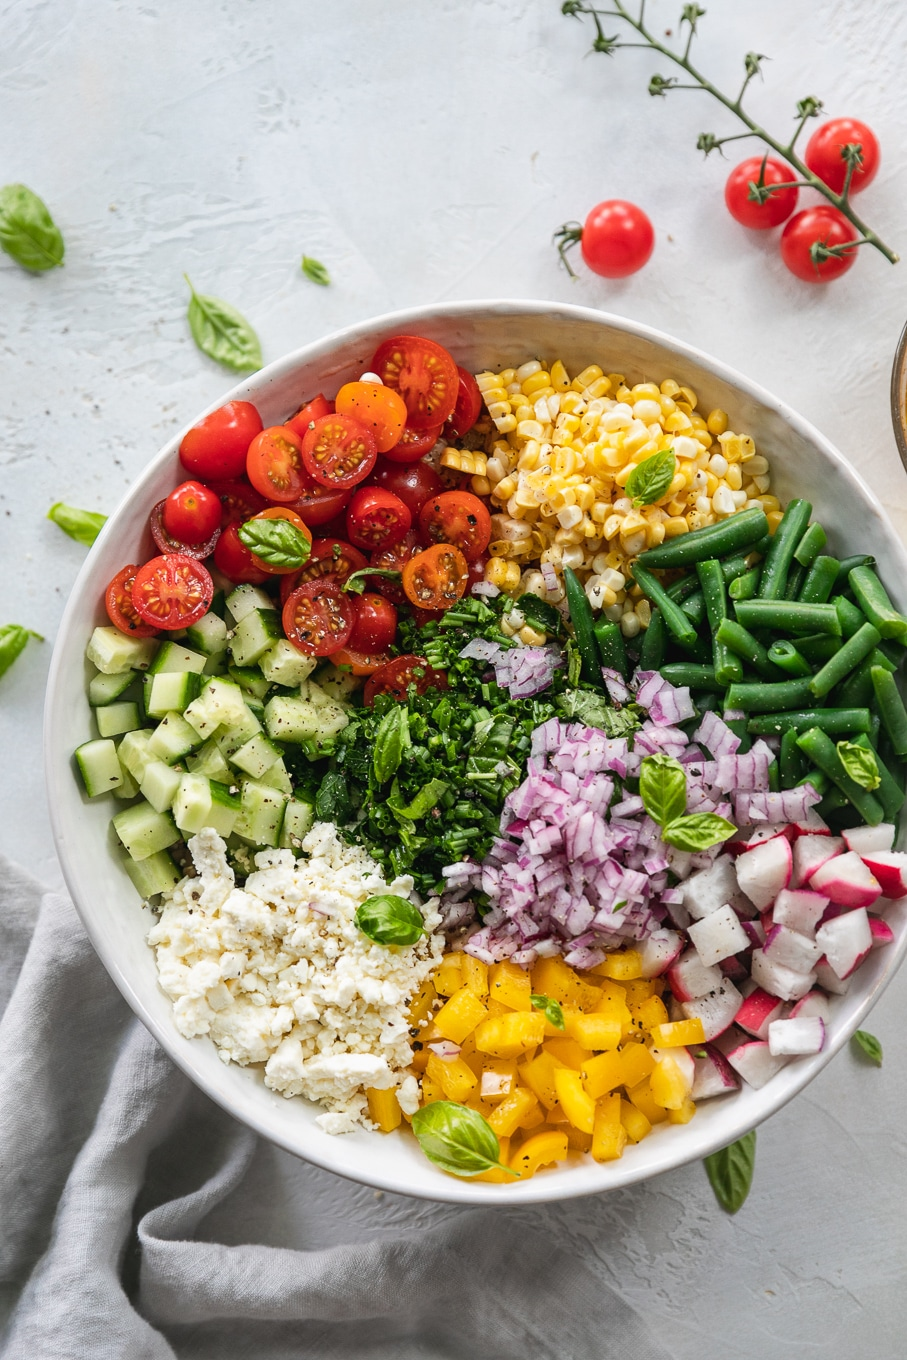 Overhead shot of a bowl of feta, bell pepper, red onion, radishes, green beans, corn, tomatoes, and cucumber